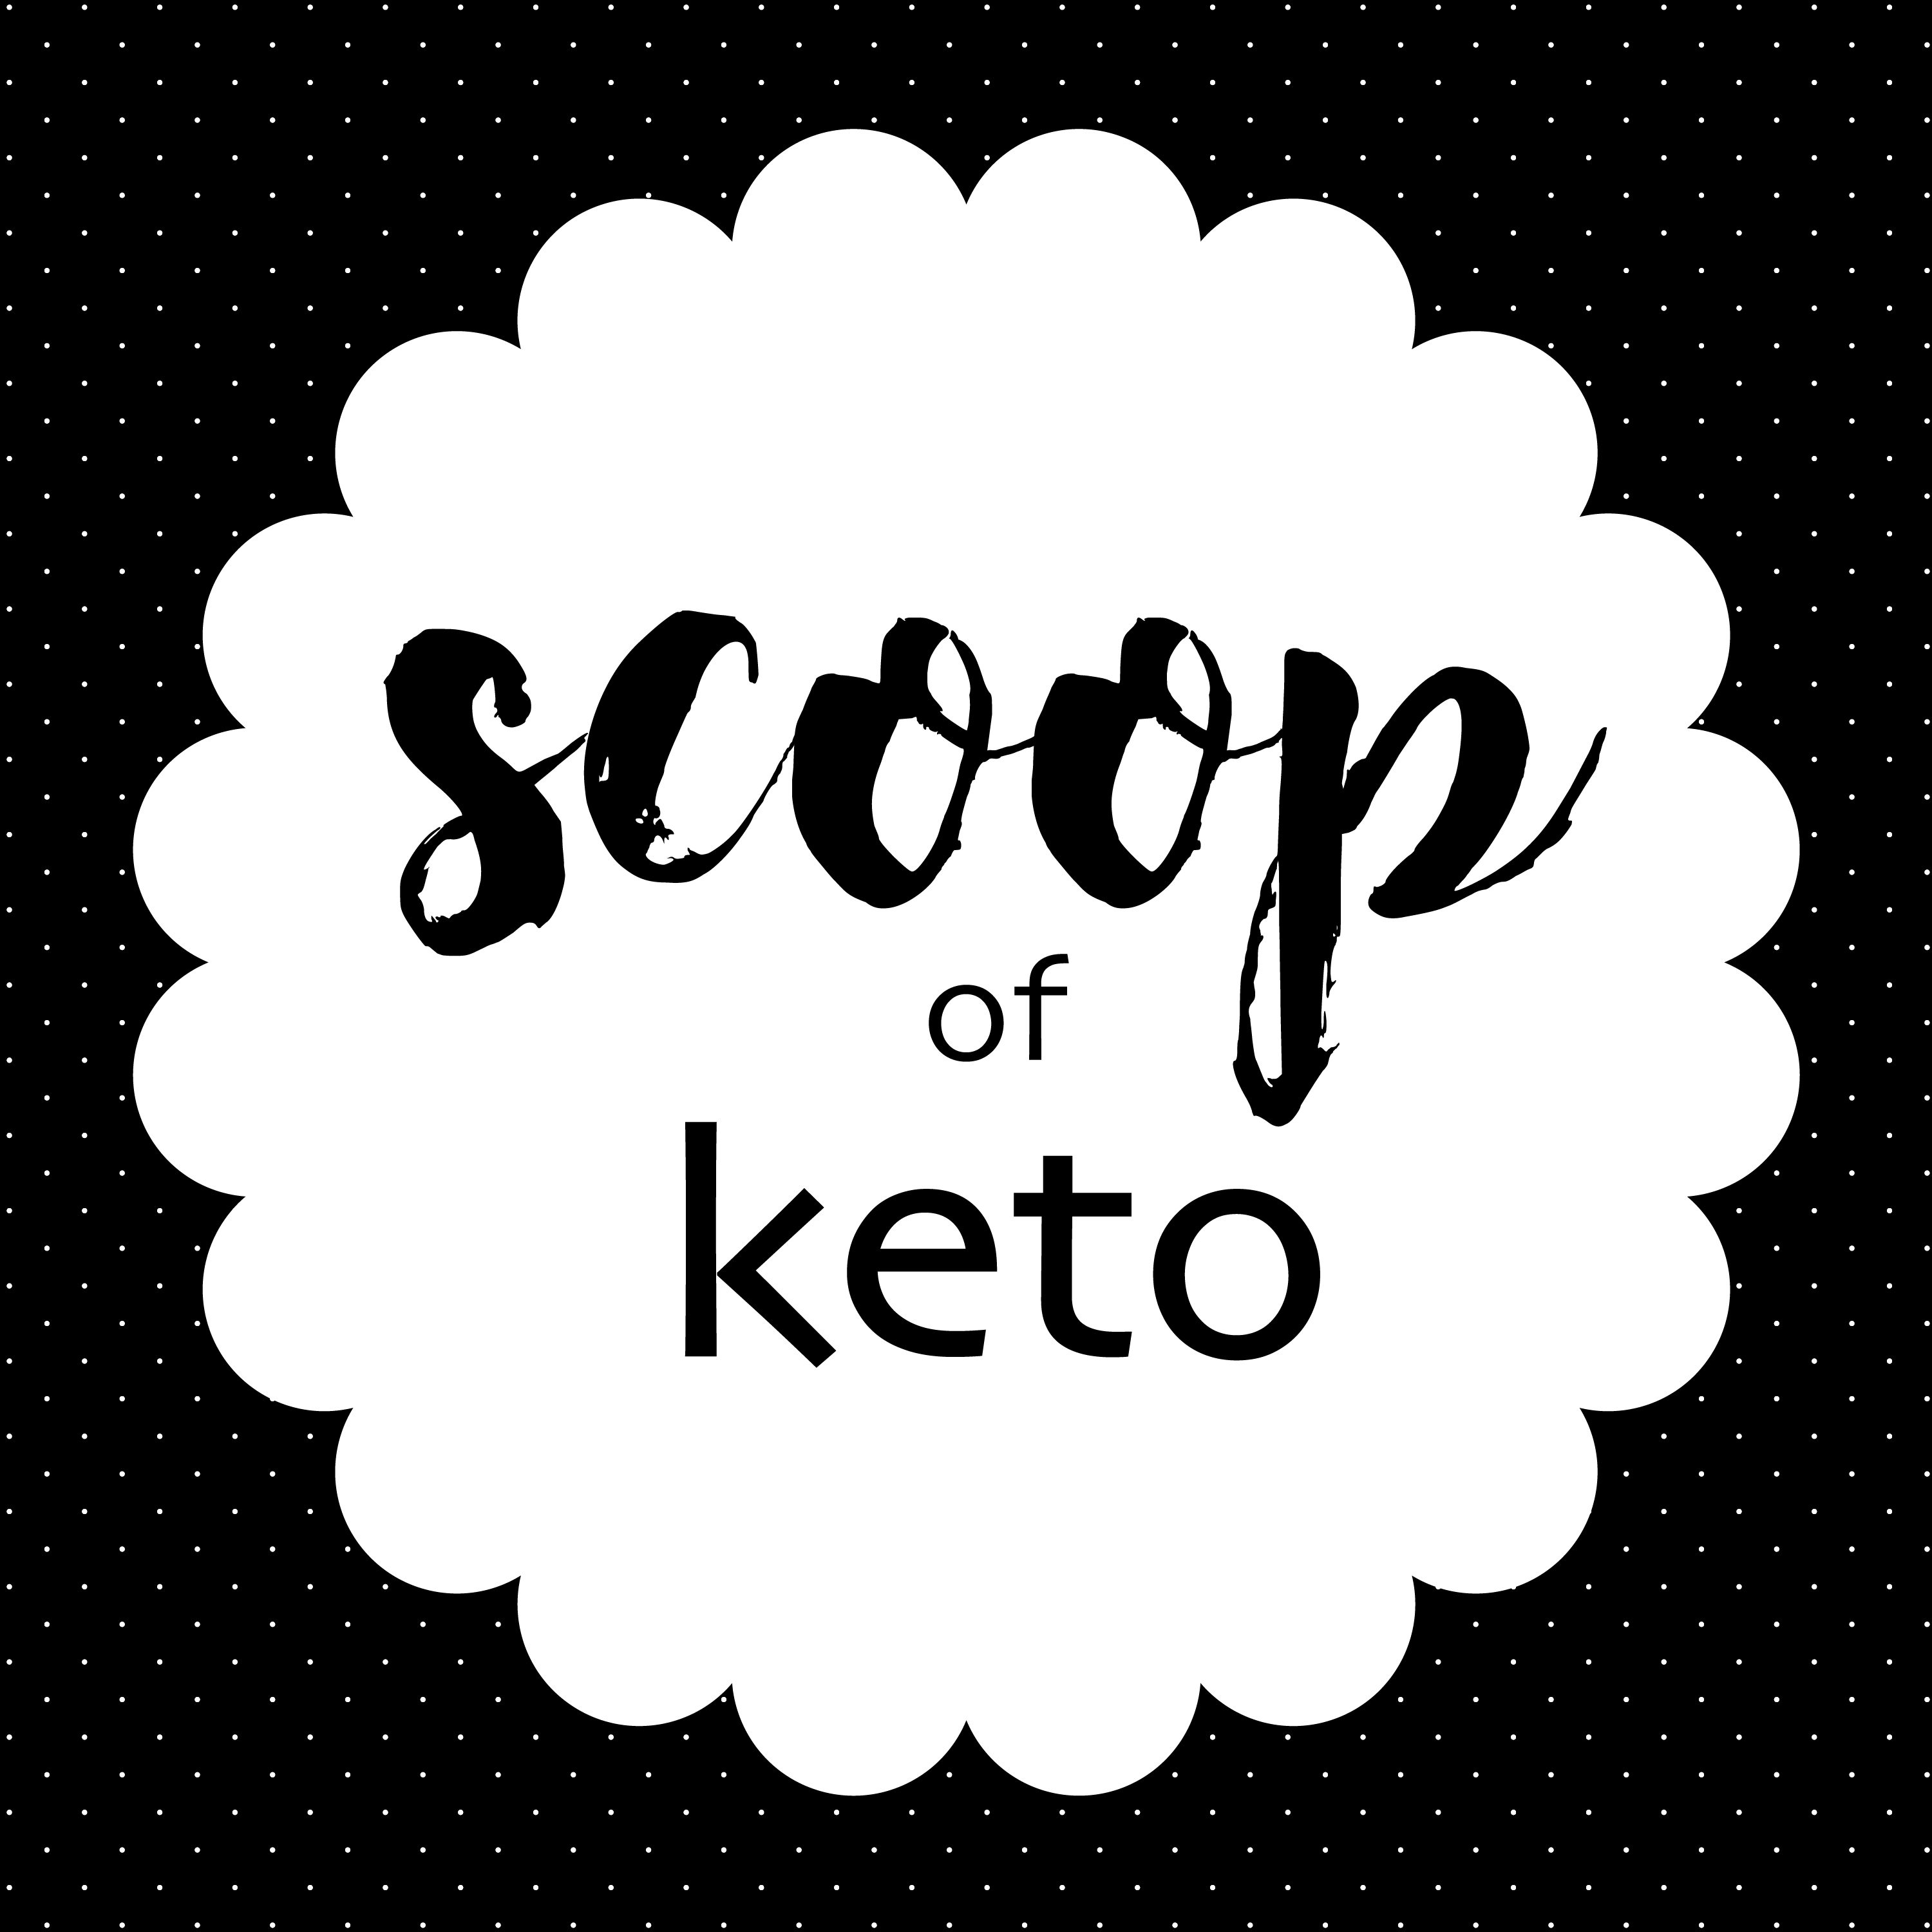 Scoop Of Keto